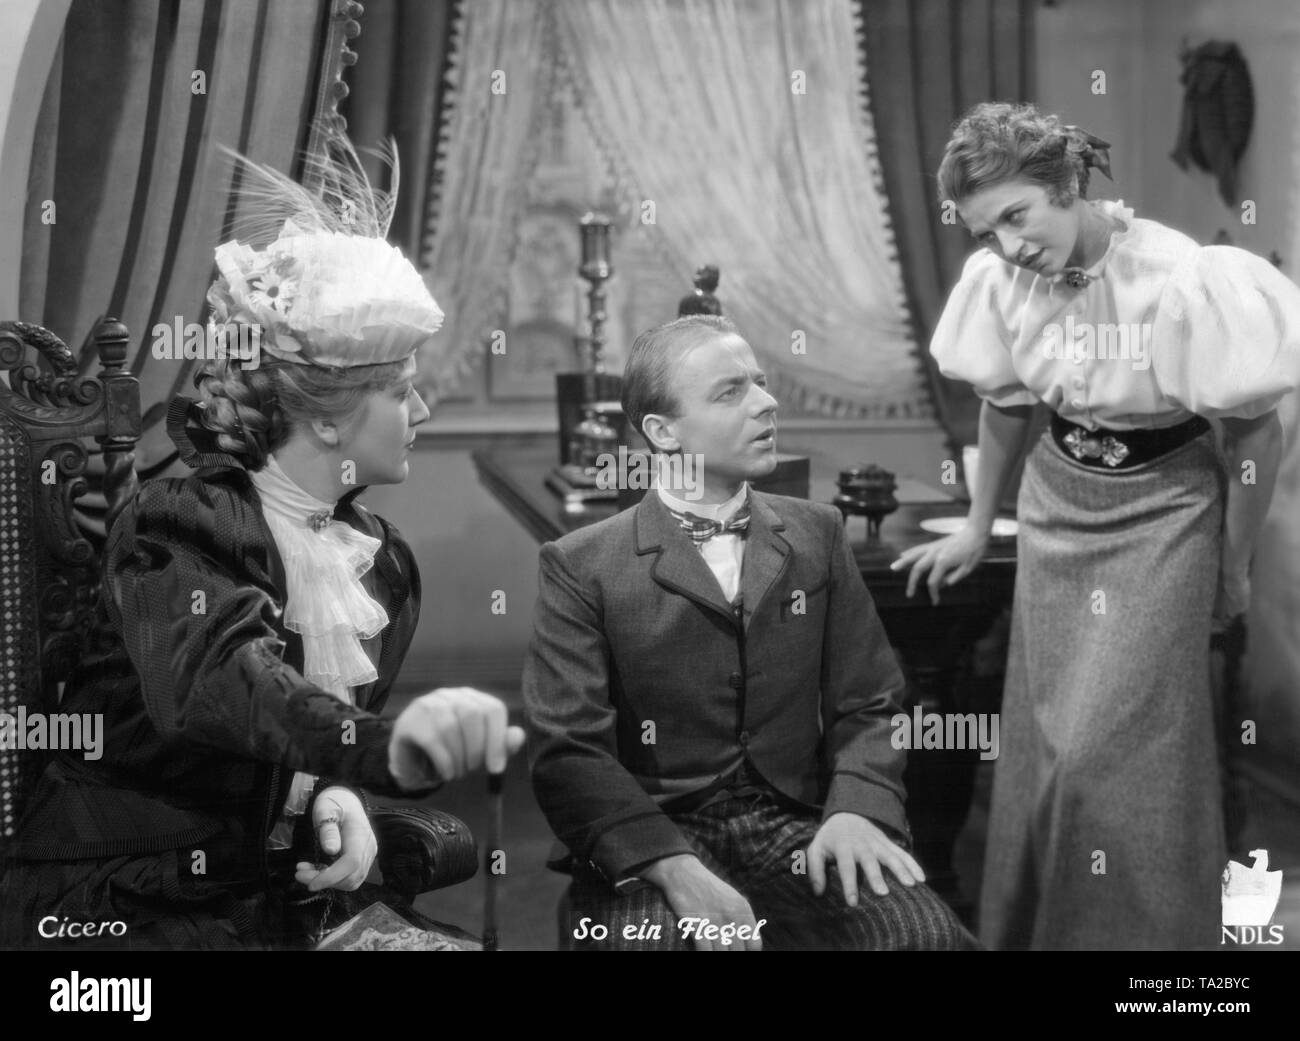 Anita Mey (left), Heinz Ruehmann as Dr. med. Pfeiffer / Erich Pfeiffer (center) and Inge Conradi as Ilse Bundschuh in the comedy 'So ein Flegel' by Robert Stemmle. This was the first film adaptation of the Feuerzangenbowle by Heinrich Spoerl. - Stock Image